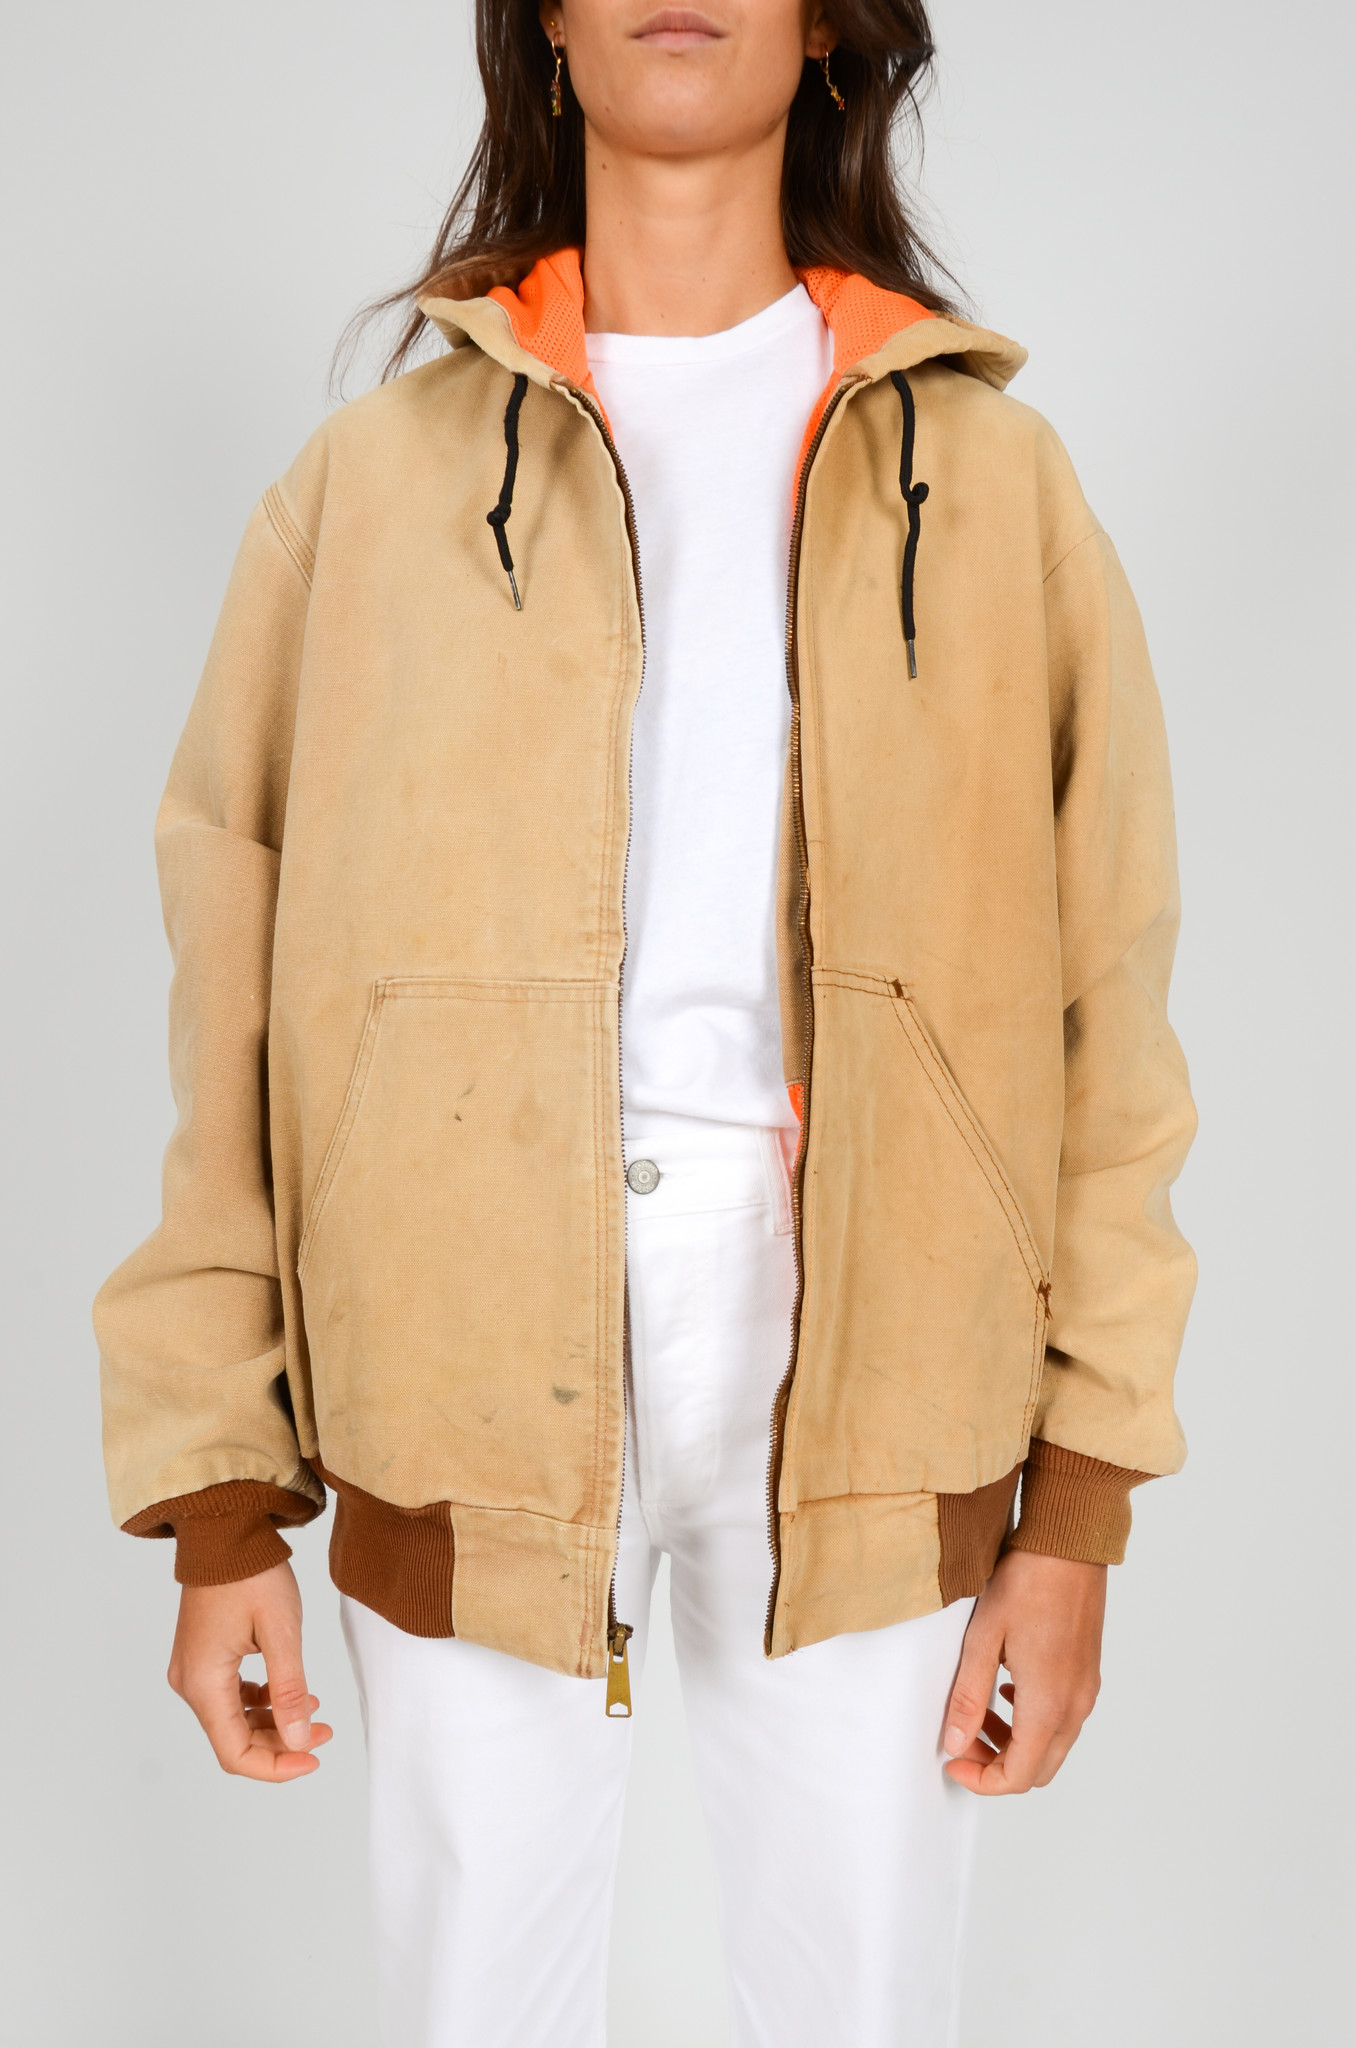 CARHARTT REVISITED JACKET-2